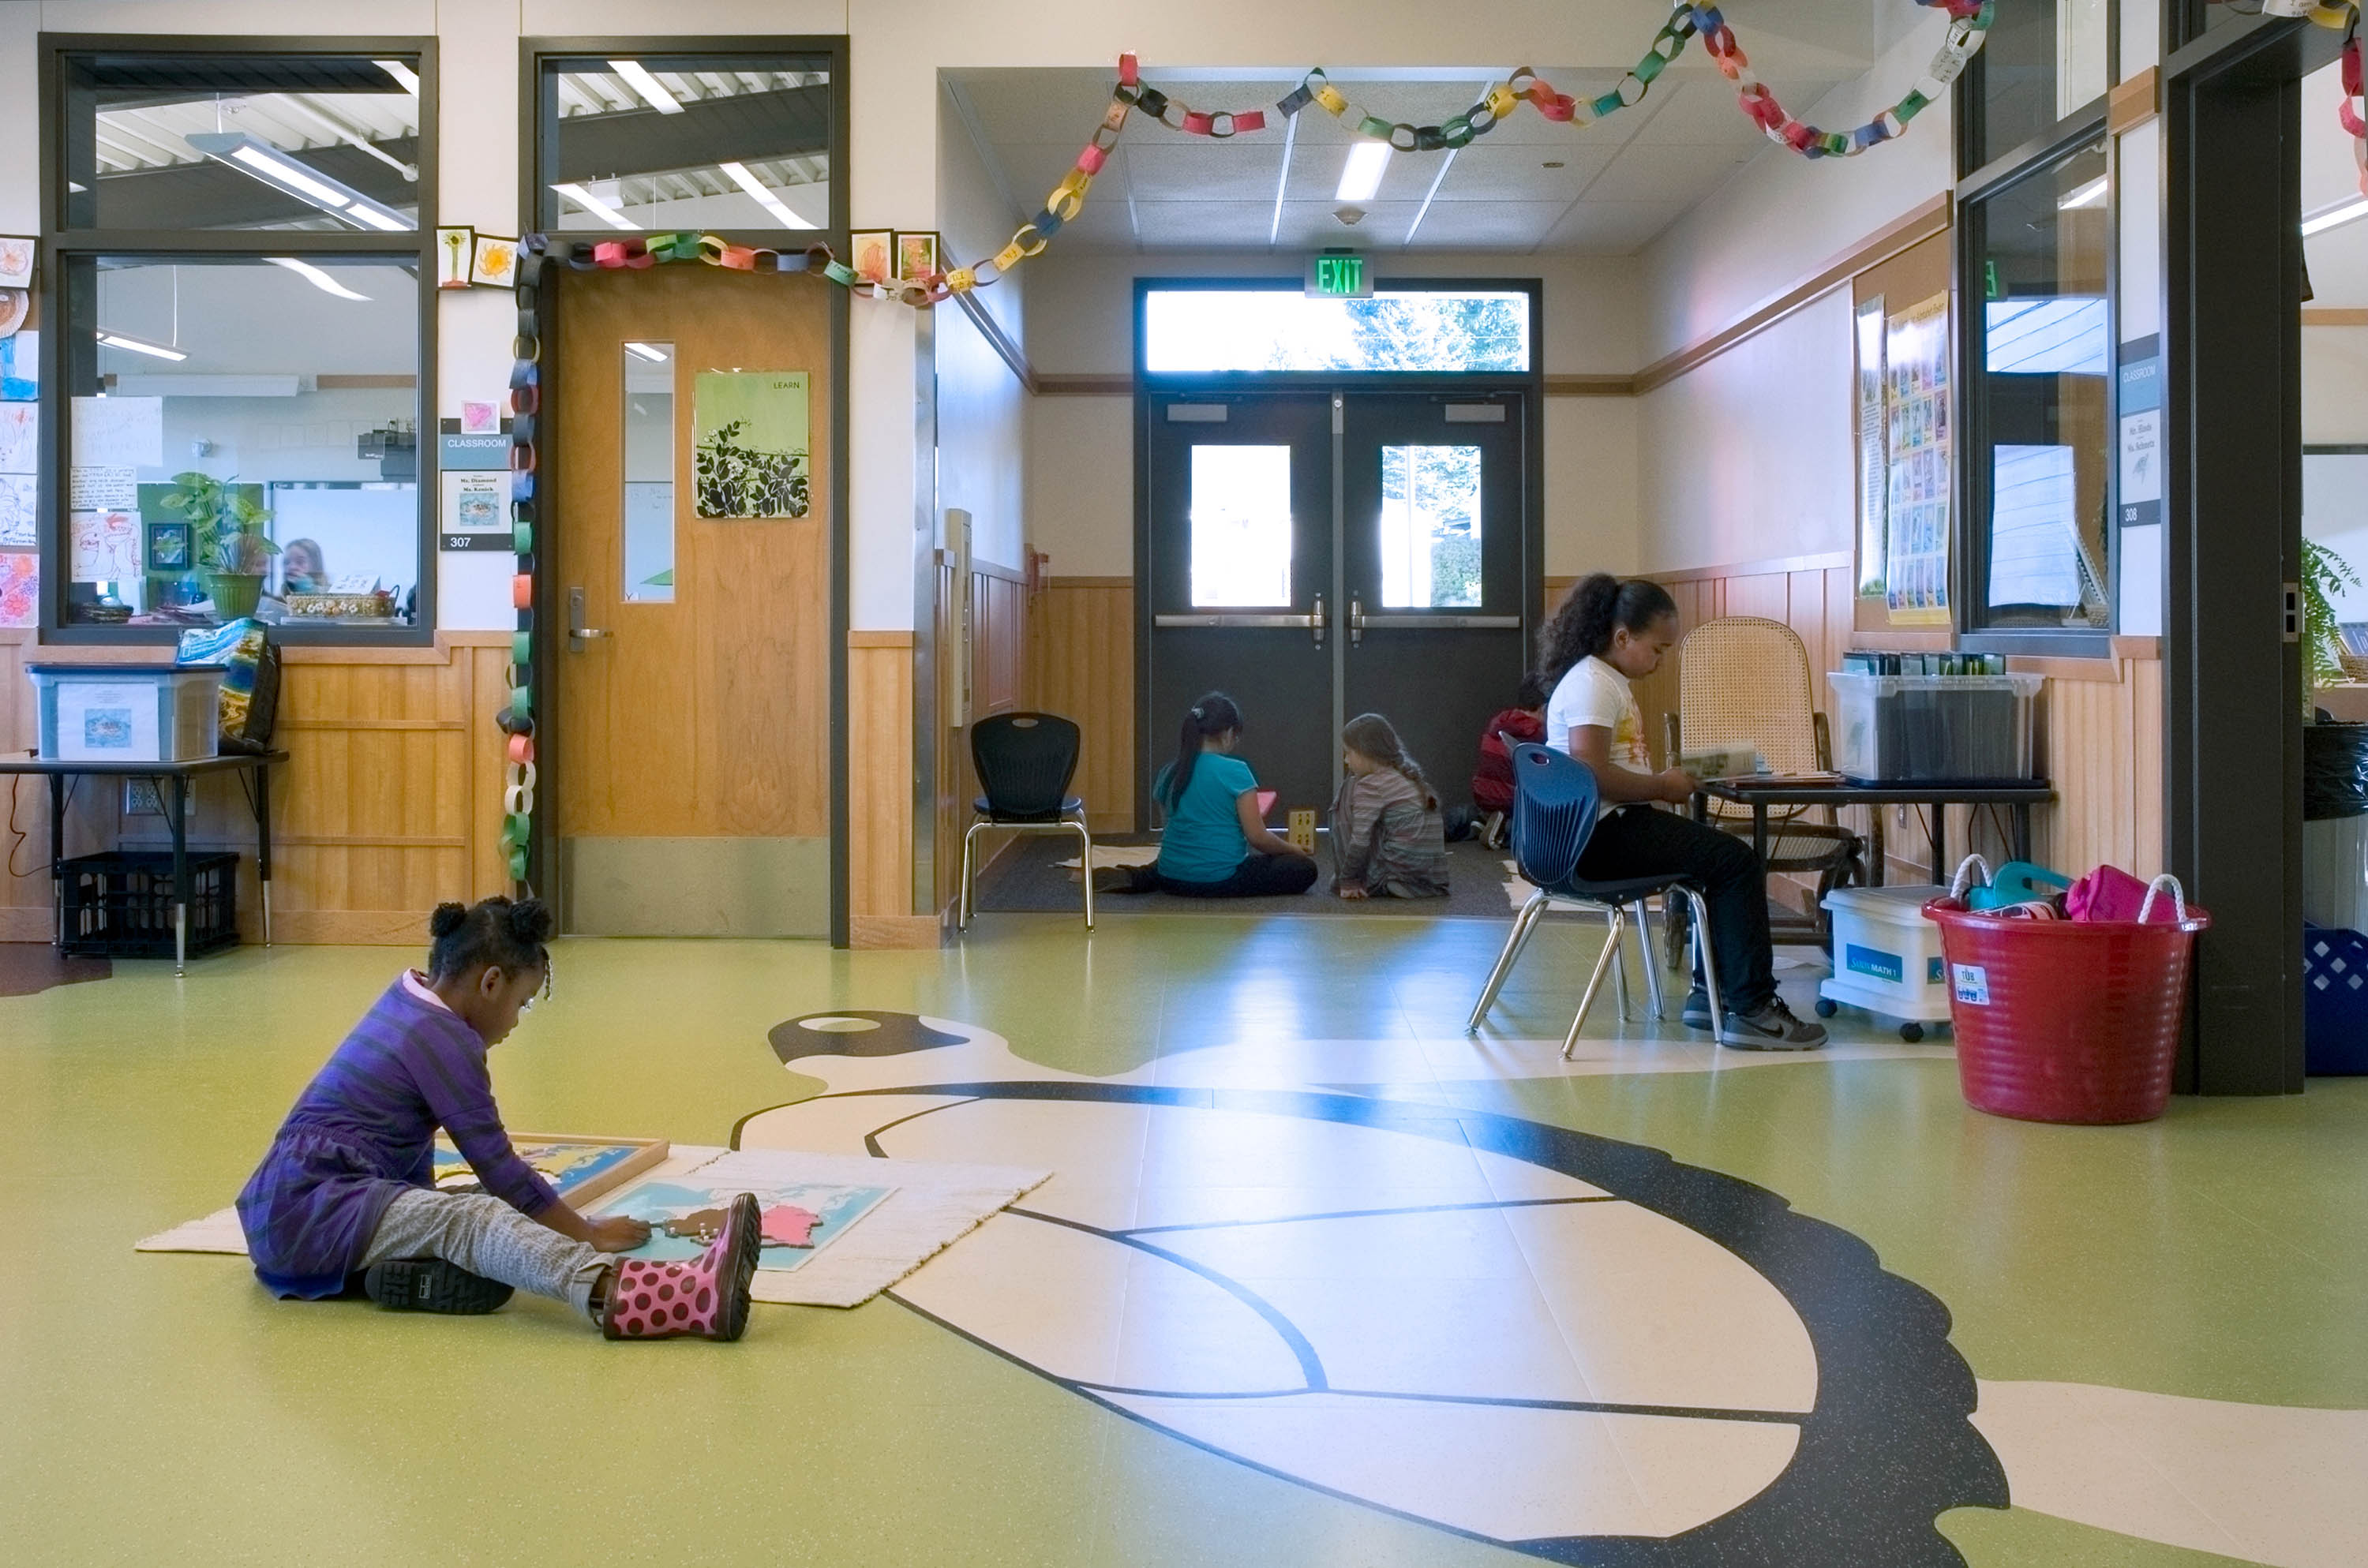 Students on their own working in a flex space.